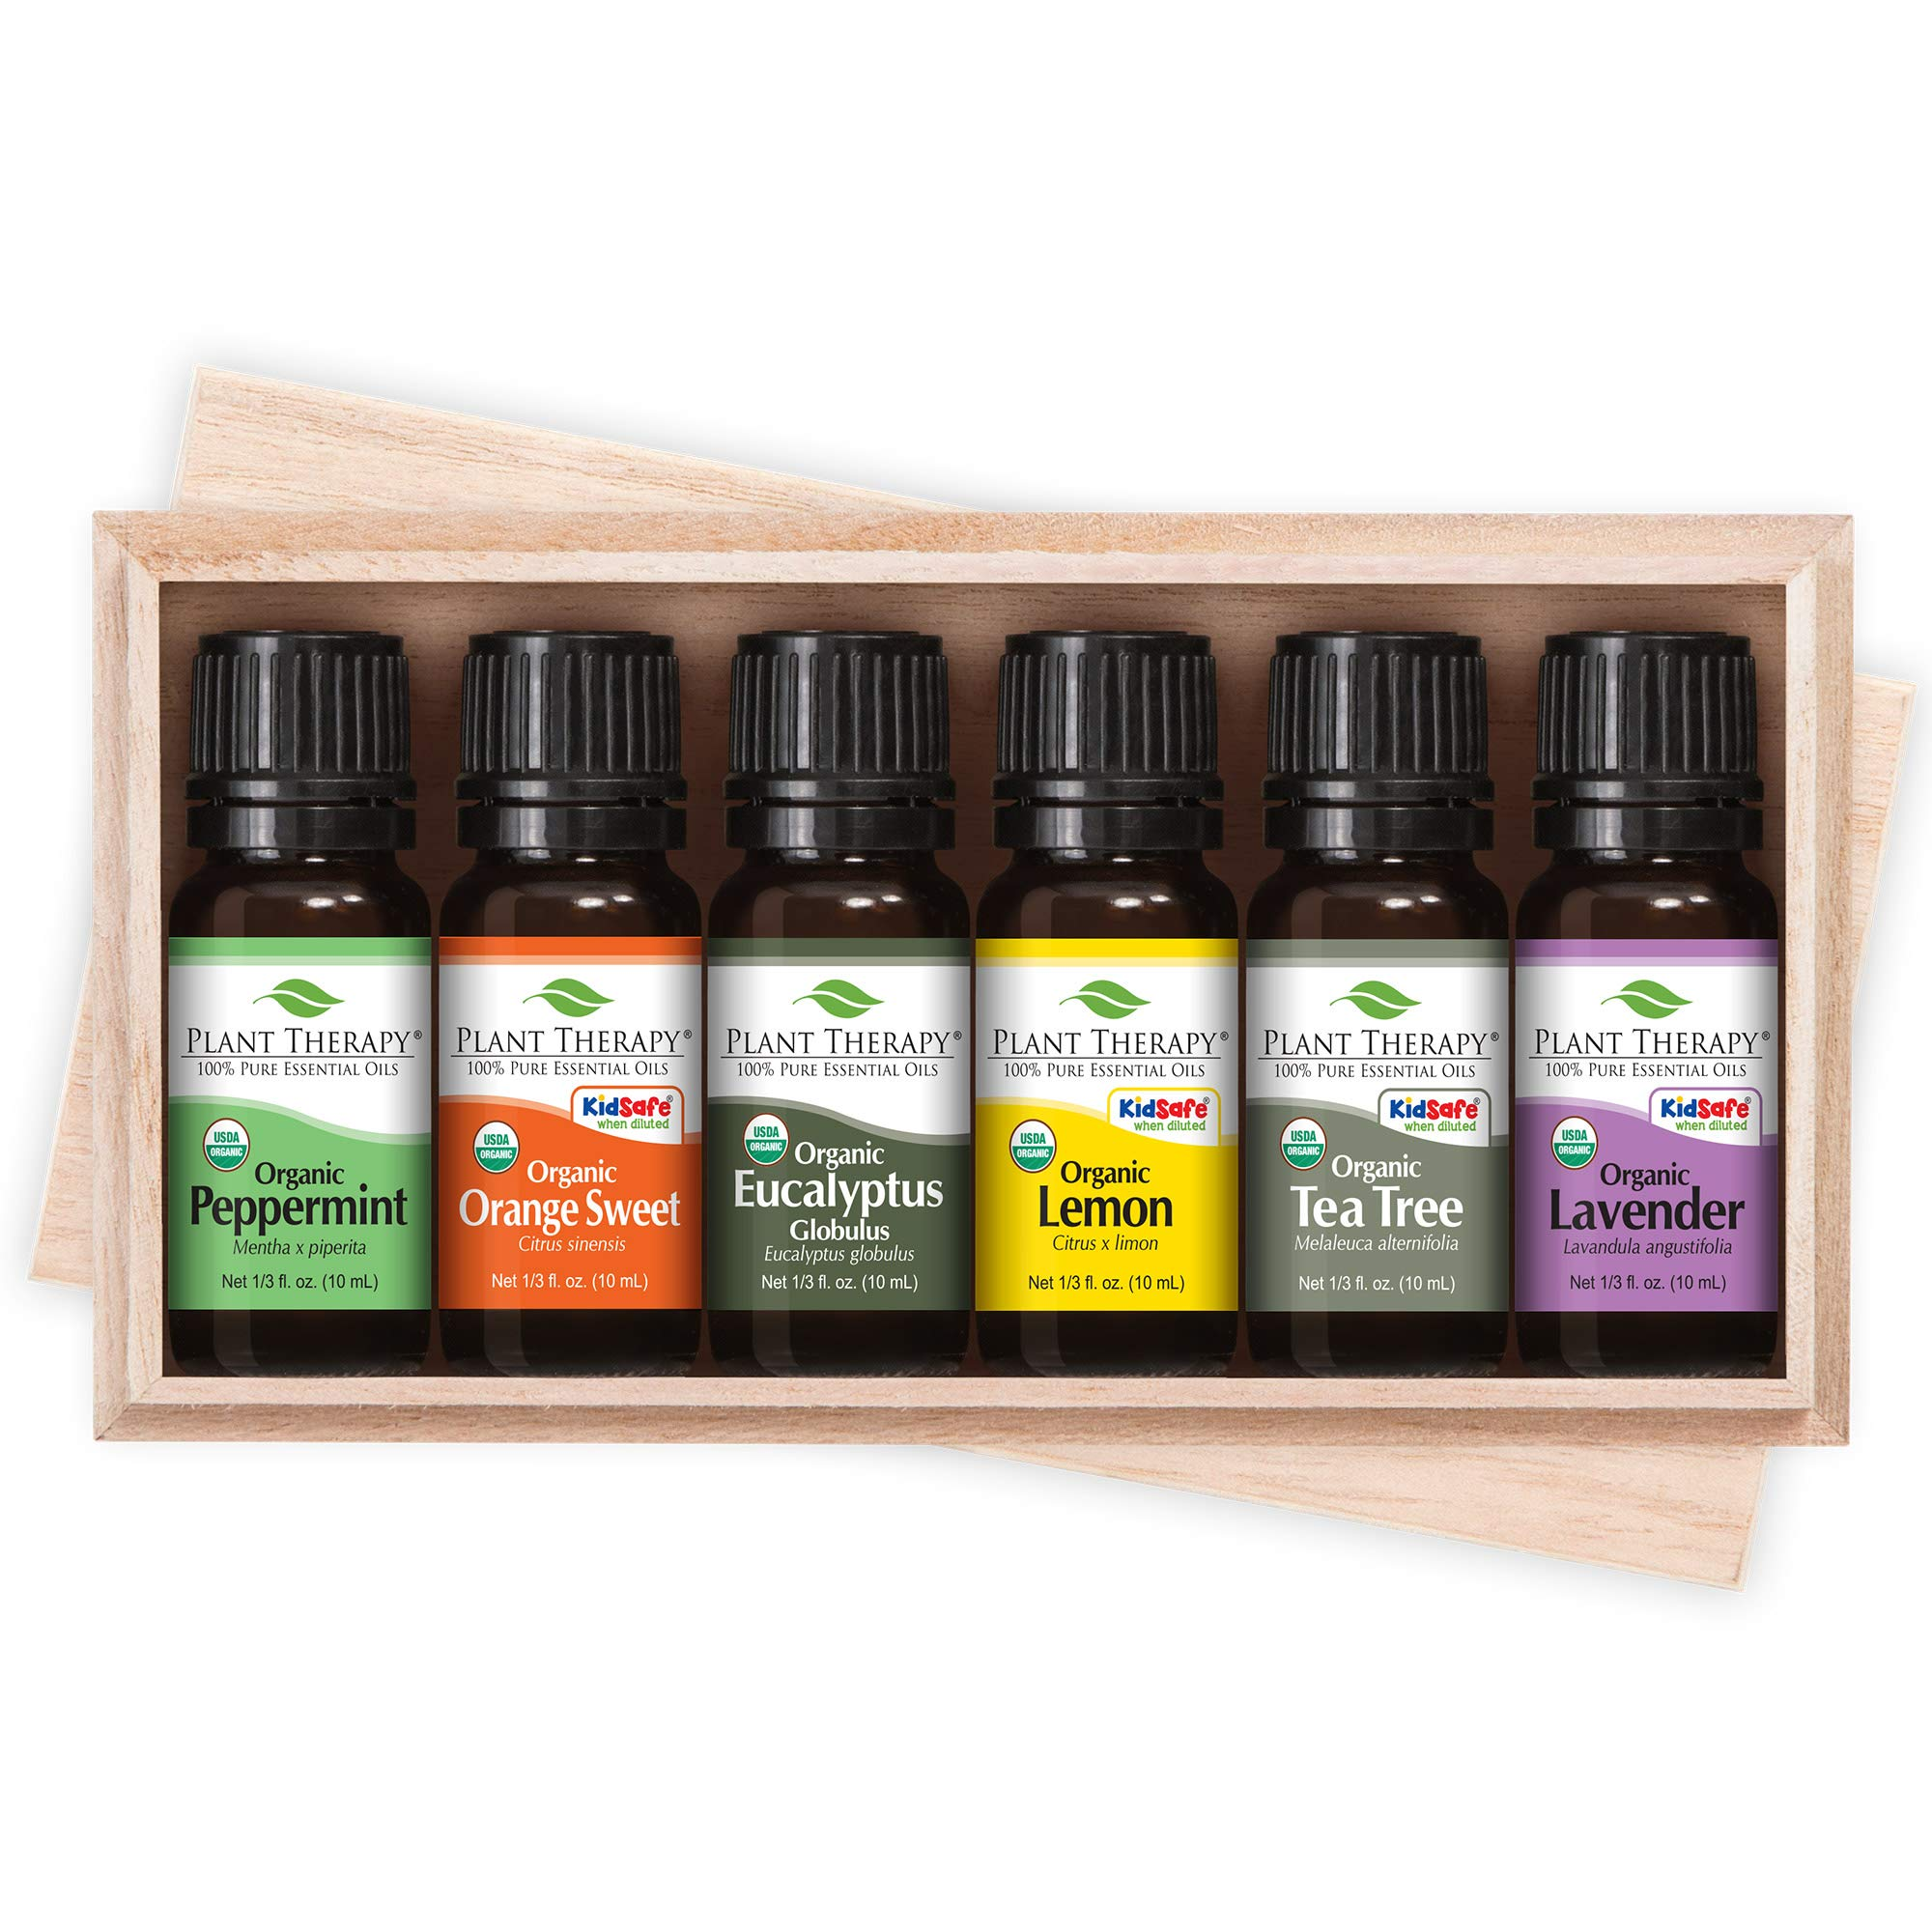 Plant Therapy Top 6 Organic Essential Oil Set - Lavender, Peppermint, Eucalyptus, Lemon, Tea Tree, In A Wooden Box 100% Pure, USDA Organic, Natural Aromatherapy, Therapeutic Grade 10 mL (1/3 oz) by Plant Therapy